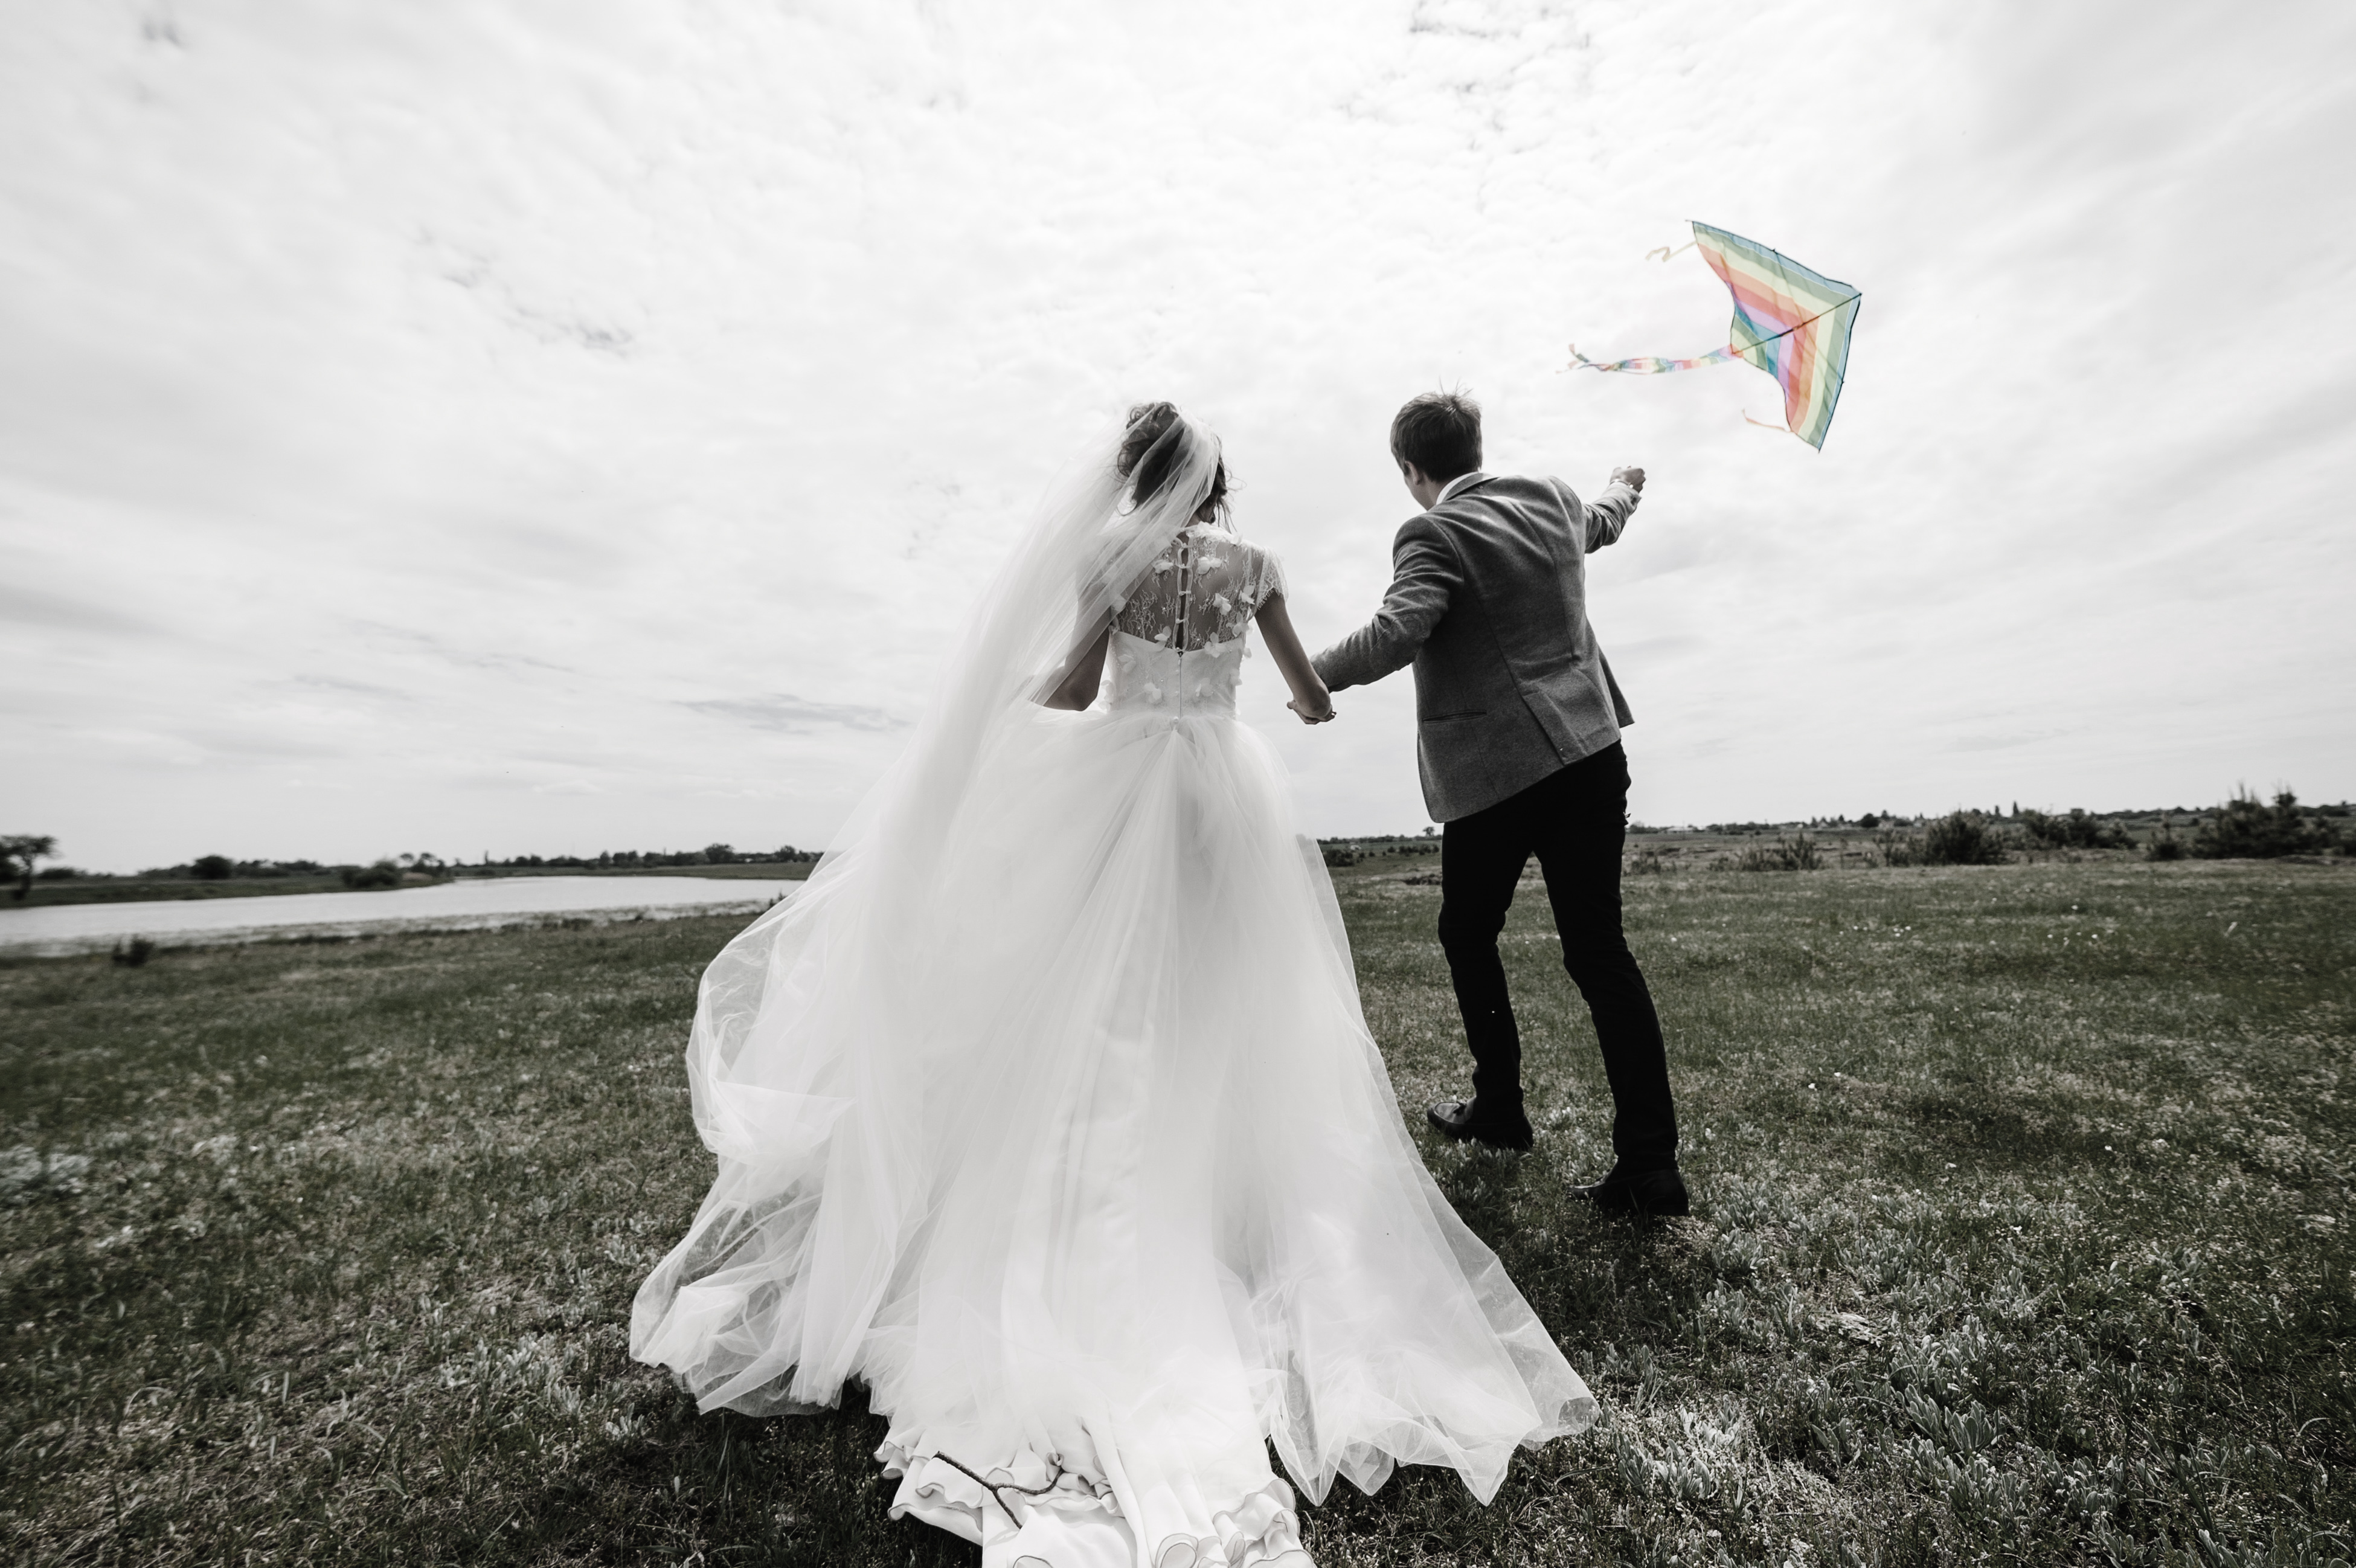 A wedding couple running back around the field letting kite fly and play and hold the kite. Bride and groom walk near lake in the nature flying a kite together on a wedding day.